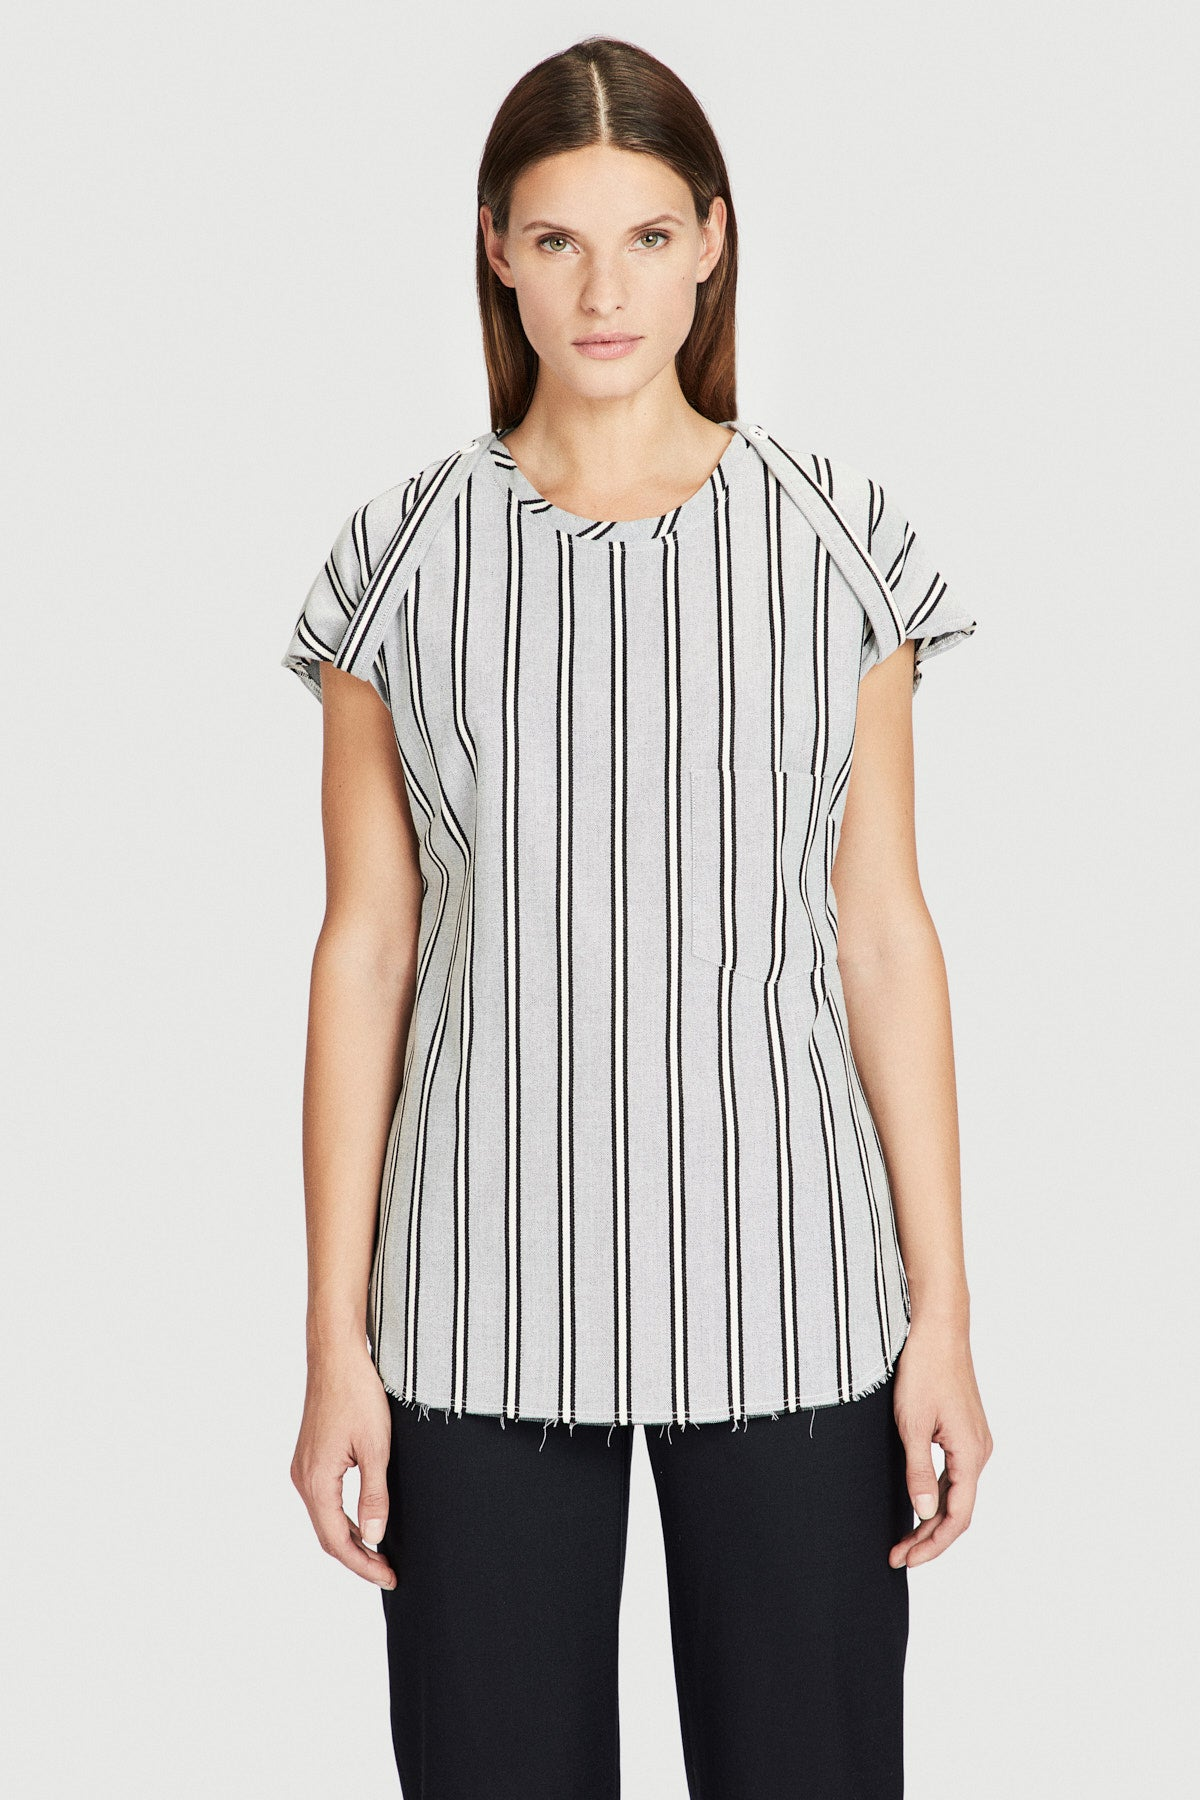 Off-White Striped Wool Tee